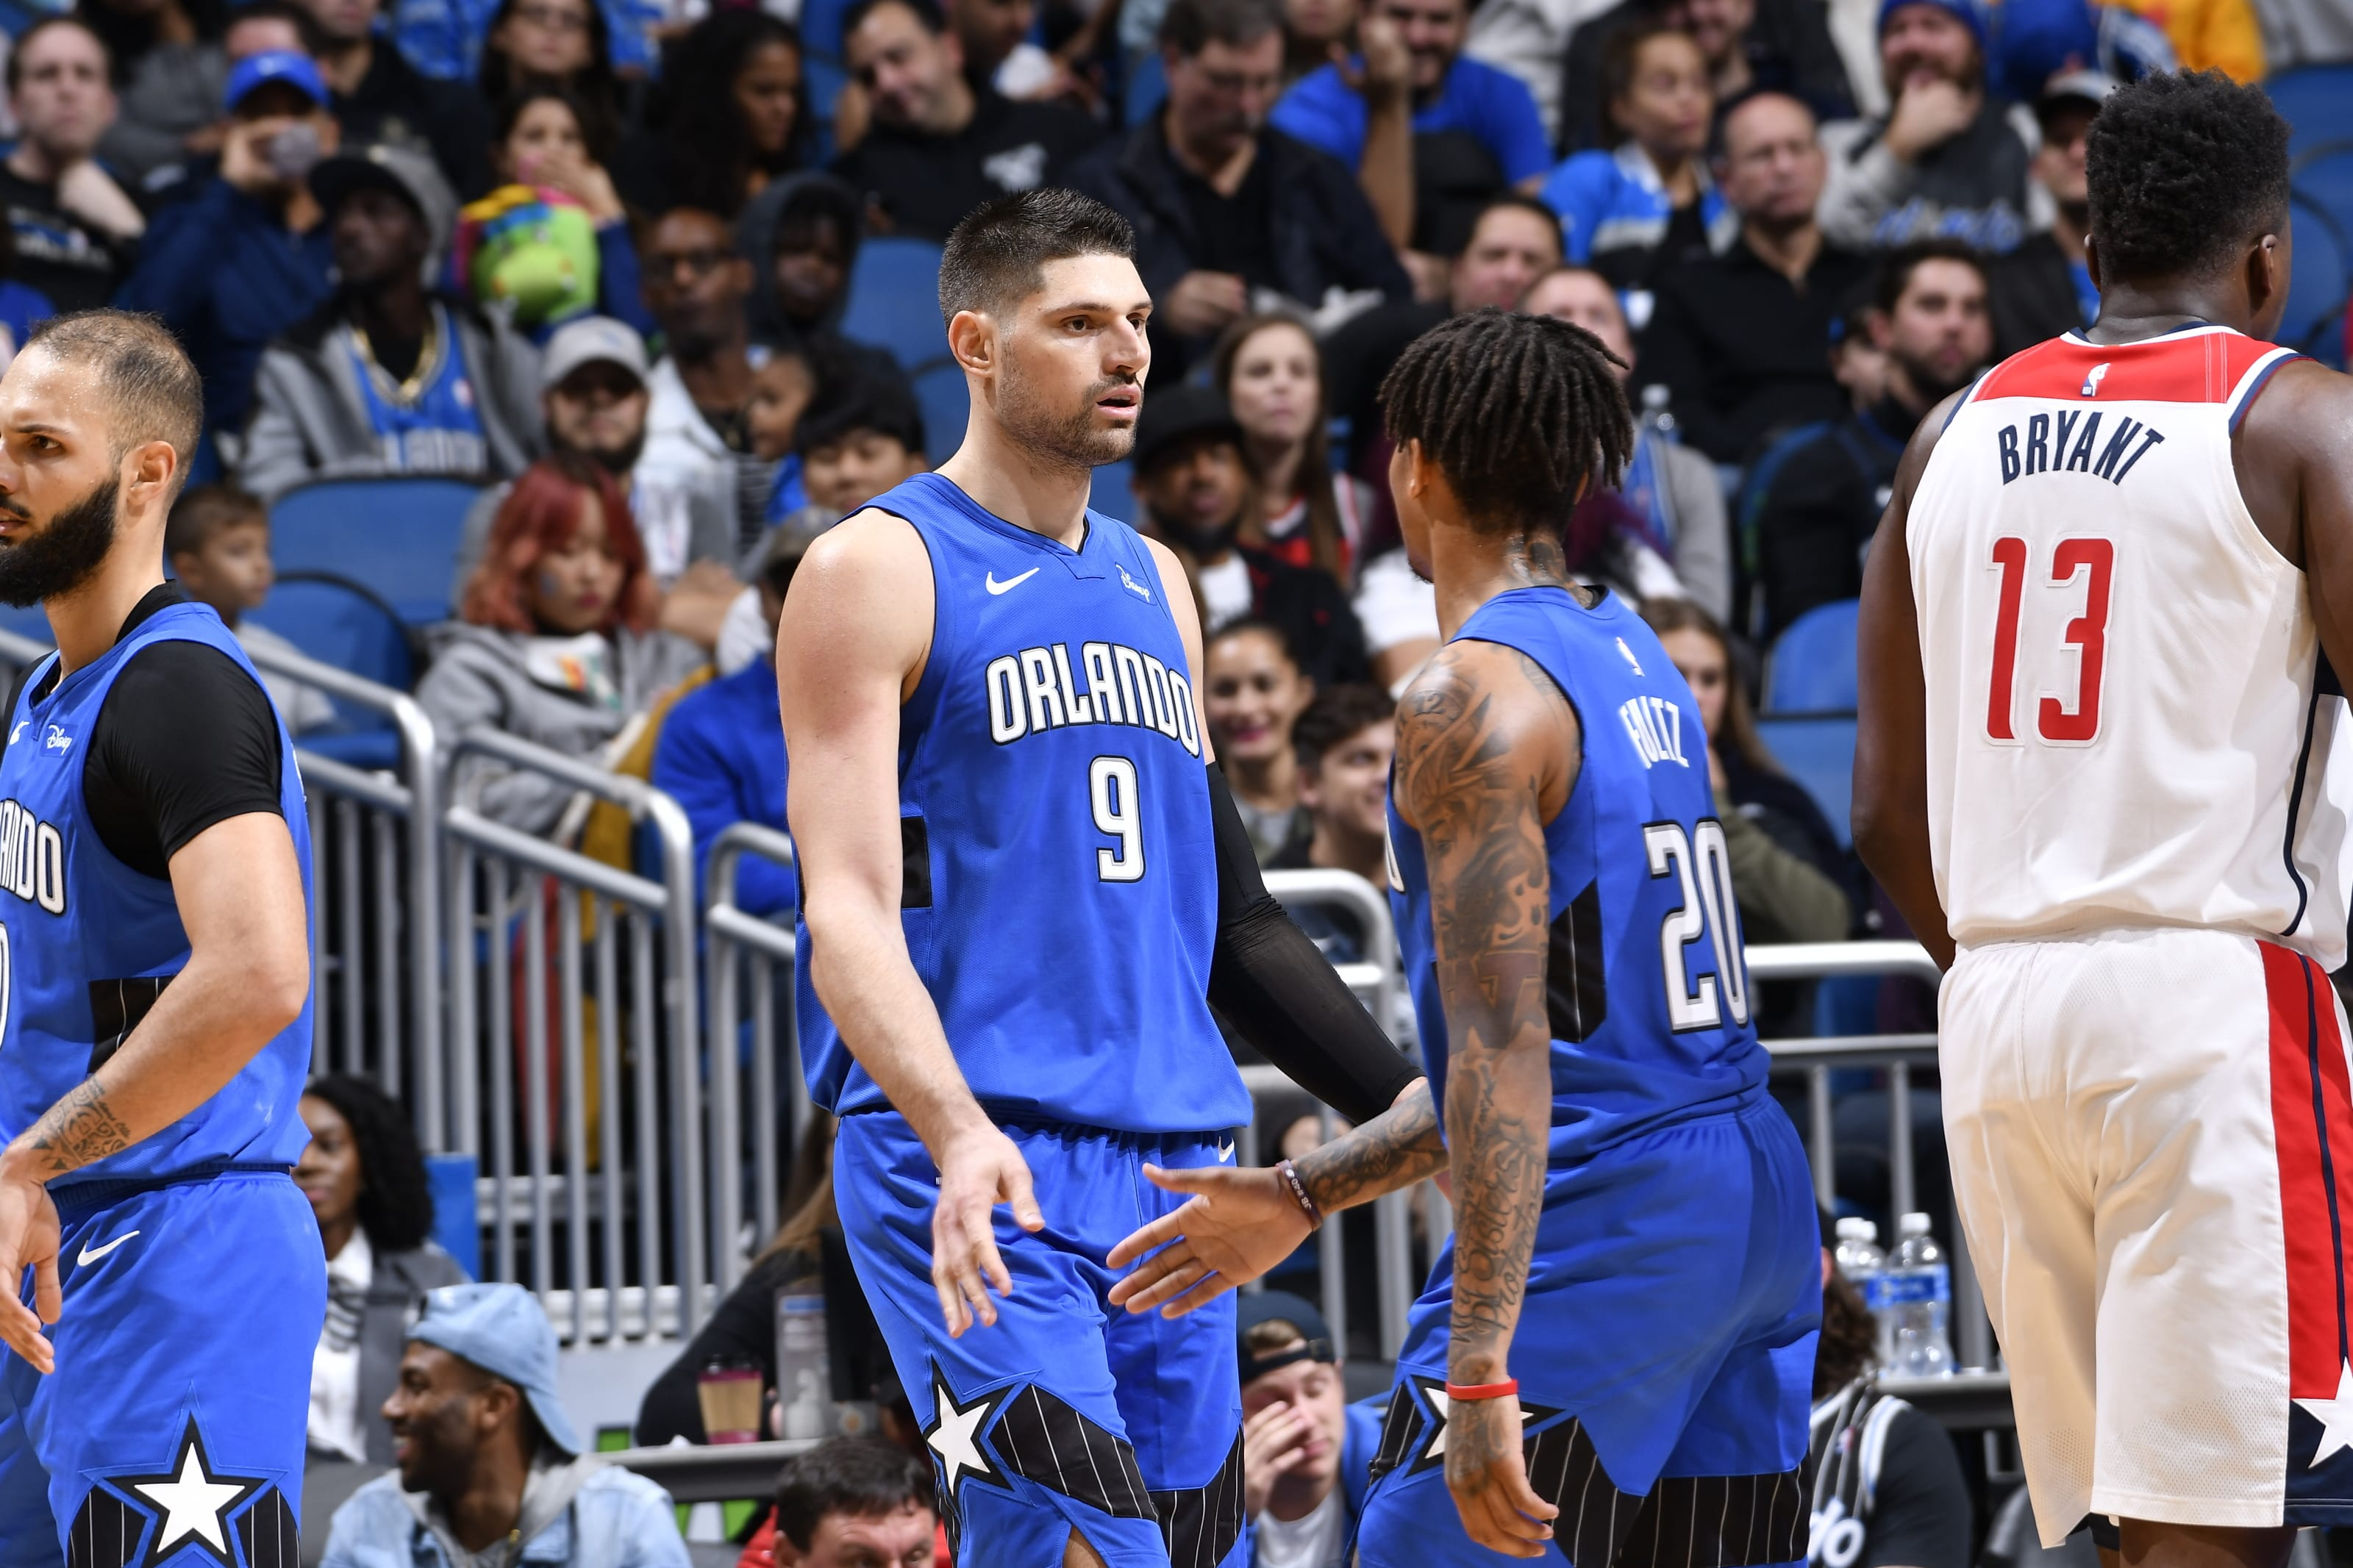 Markelle Fultz, Nikola Vucevic, Orlando Magic